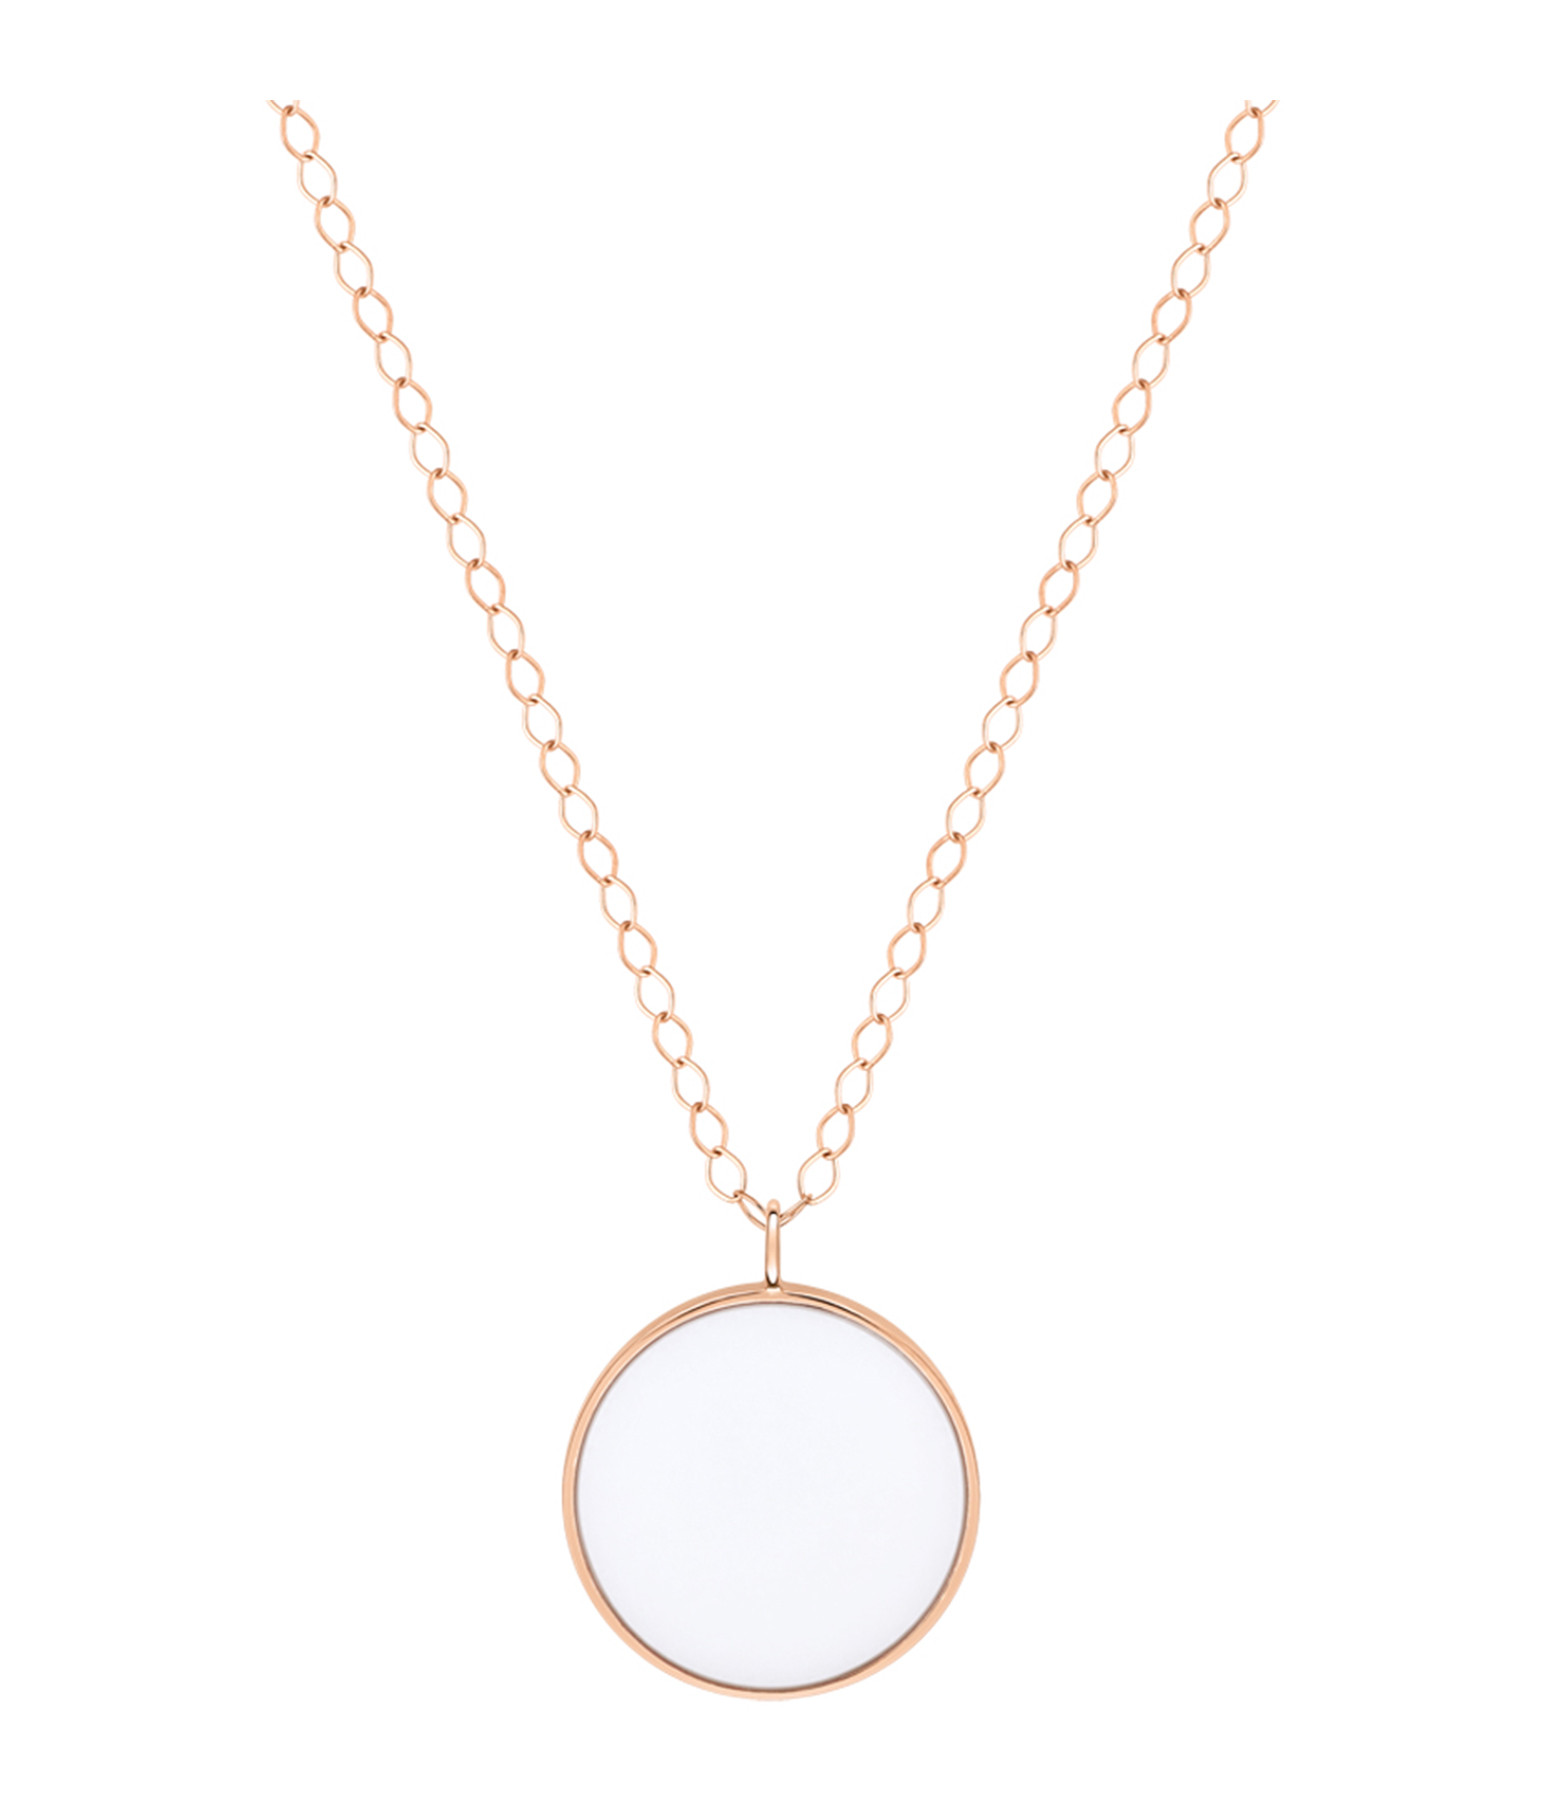 GINETTE NY - Collier Ever Disc Jumbo Or Rose Agate Blanche